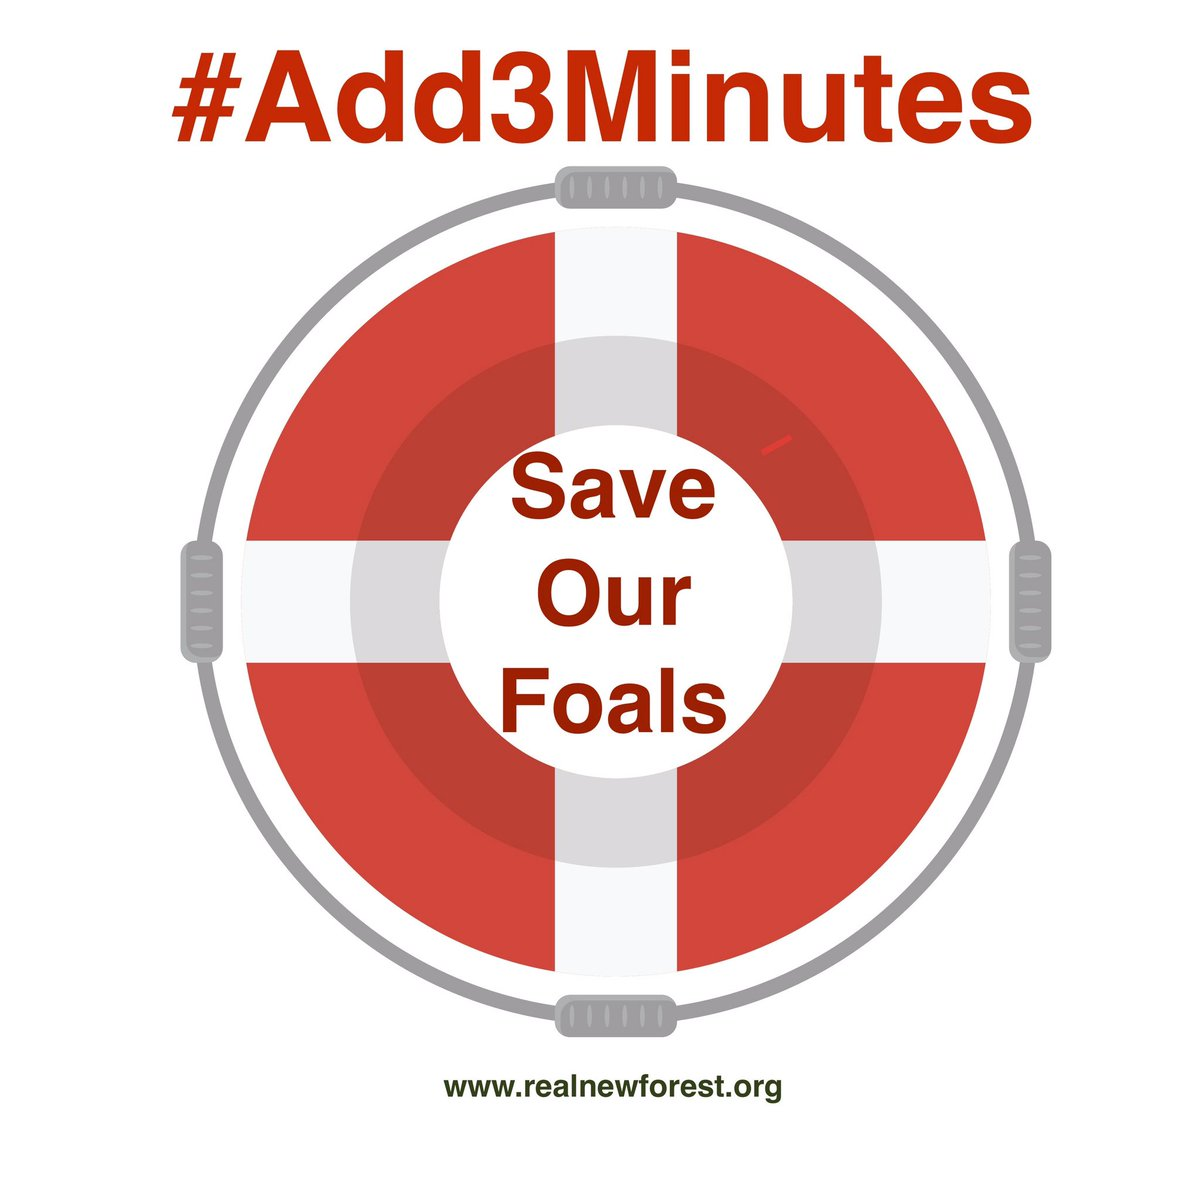 It makes a nice change to report that there were no animal accidents on #NewForest roads last week Thank you for driving carefully #Add3Minutes<br>http://pic.twitter.com/8QDRwUmtIB